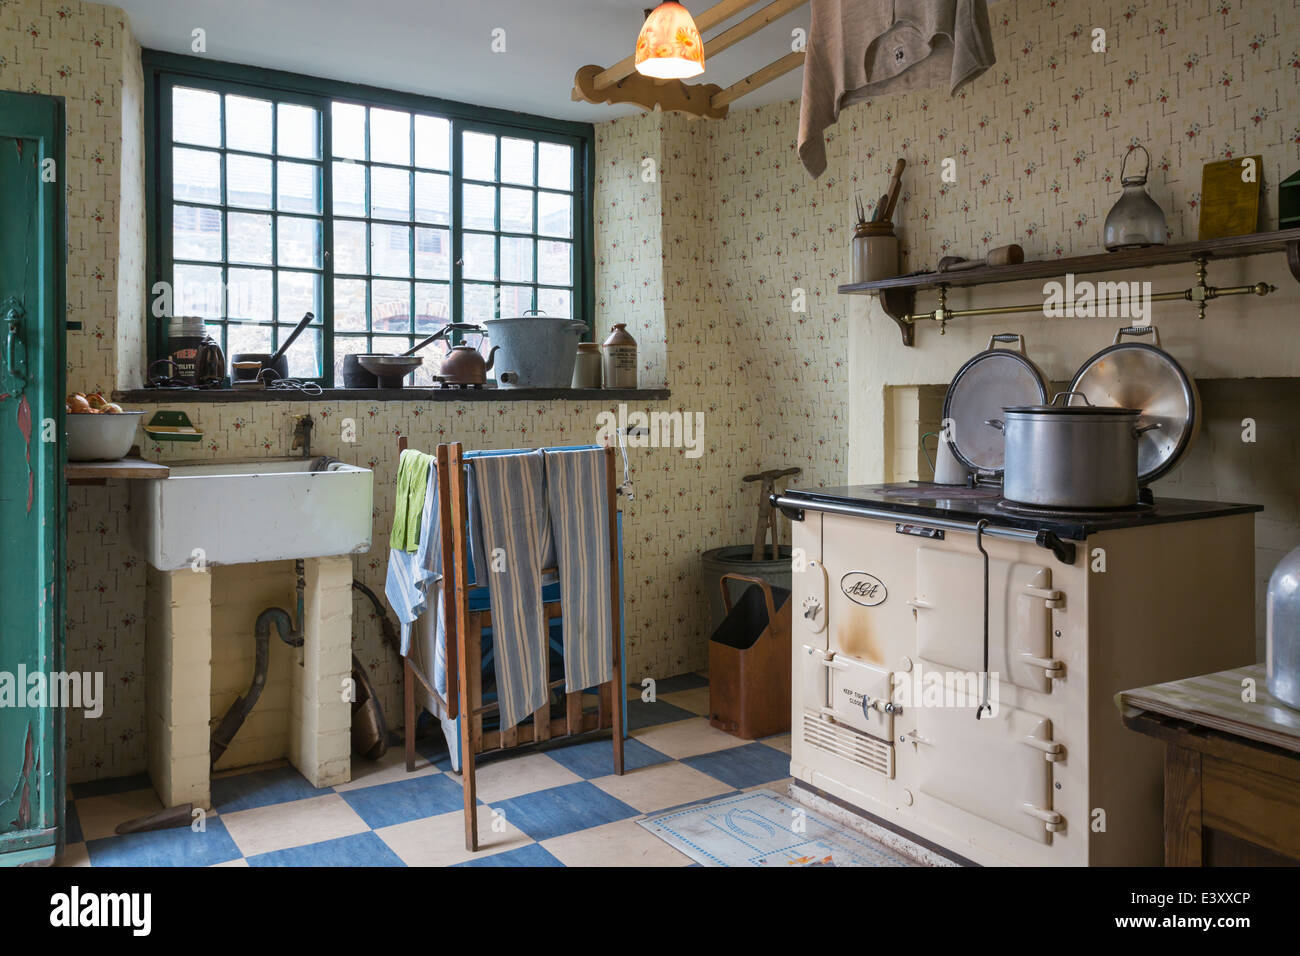 Old Kitchen Range Stock Photos & Old Kitchen Range Stock Images ...